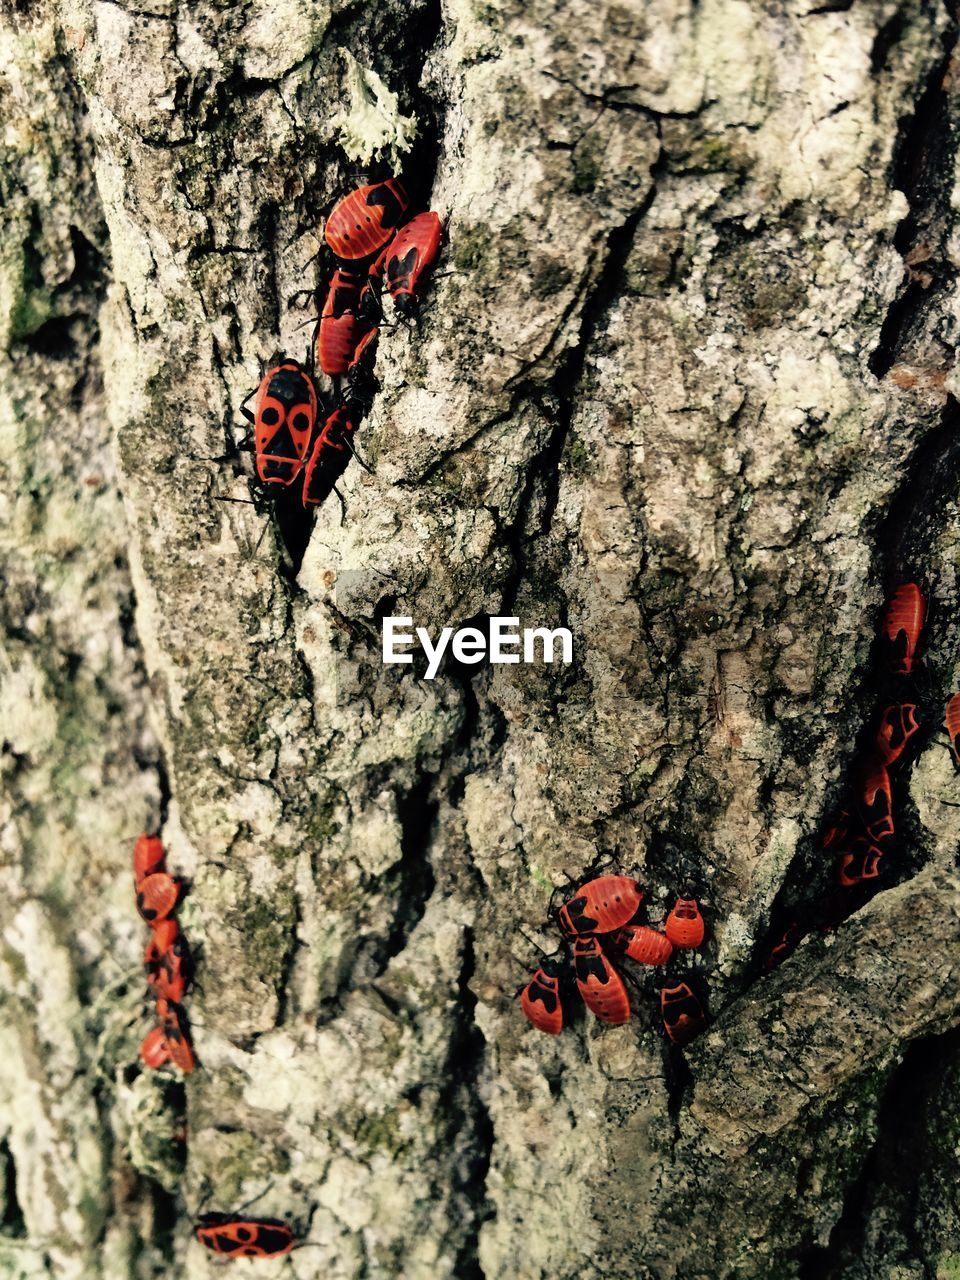 insect, invertebrate, animals in the wild, animal wildlife, red, tree, nature, animal themes, day, plant, animal, no people, close-up, trunk, tree trunk, beetle, outdoors, textured, focus on foreground, one animal, butterfly - insect